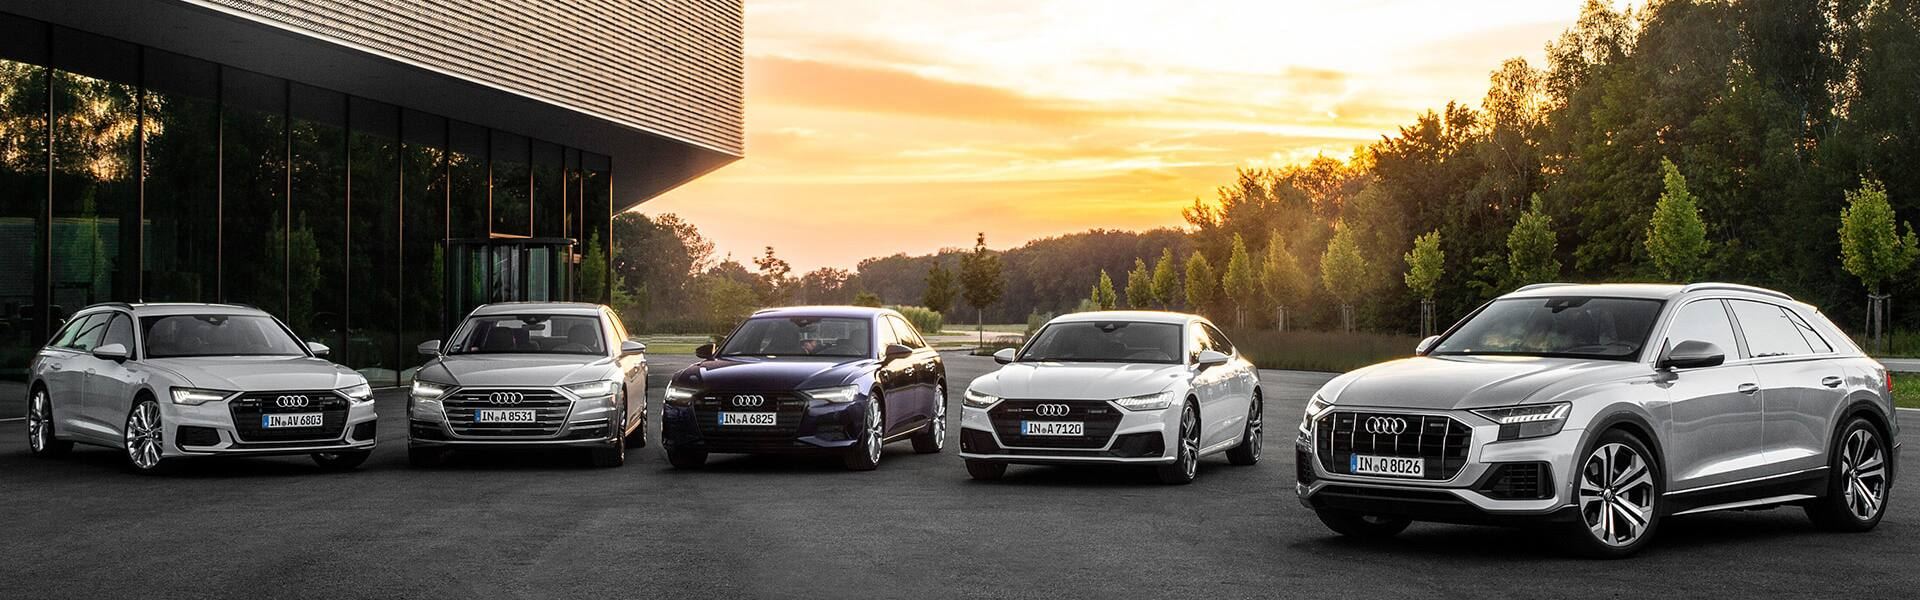 audi-connect_stage_1920x600.jpg